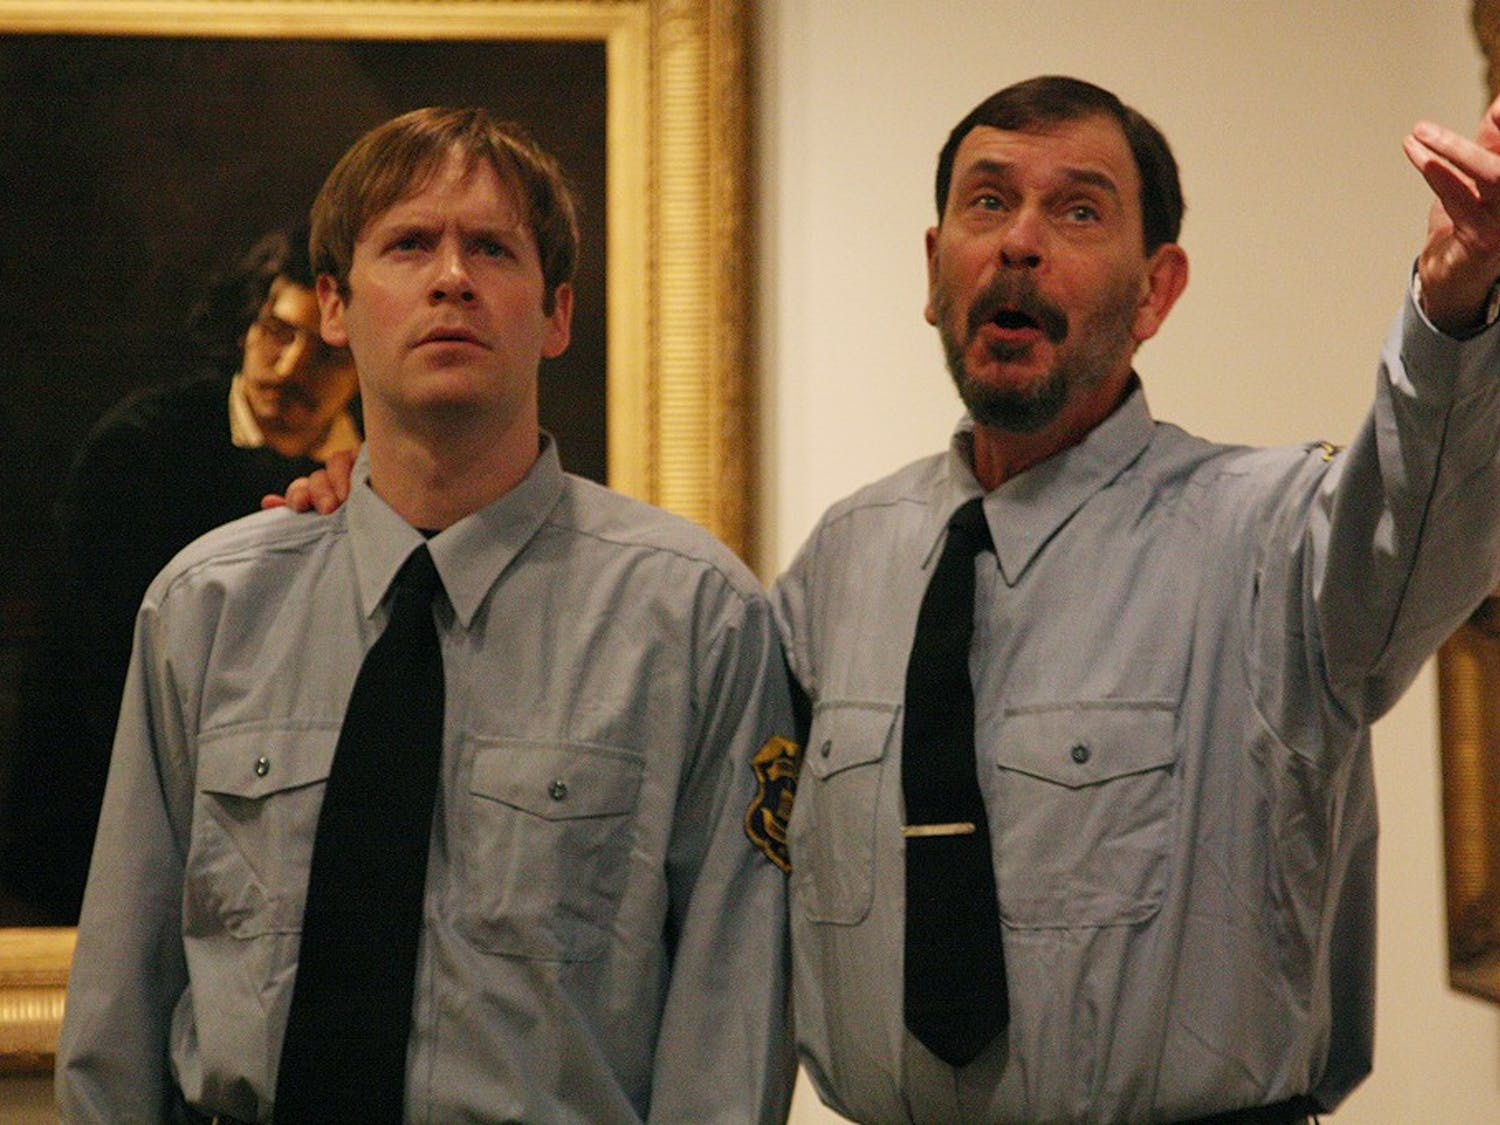 """Allan Maule (left)  and Thom Gradisher (right) act in """"Wisdom"""" written by Clyde Edgerton and directed by Akiva Fox. The play was inspired by Jules Dalou's 1889 sculpture, """"Wisdom Supporting Liberty."""" The Ackland Art Museum hosts """"Activated Art"""" live theater performances held in the museum's own galleries. The one-act plays of """"ekphrastic theater""""- theater performance inspired and based on specific works of art- were presented with a grant from the UNC Institute for the Arts and Humanities."""